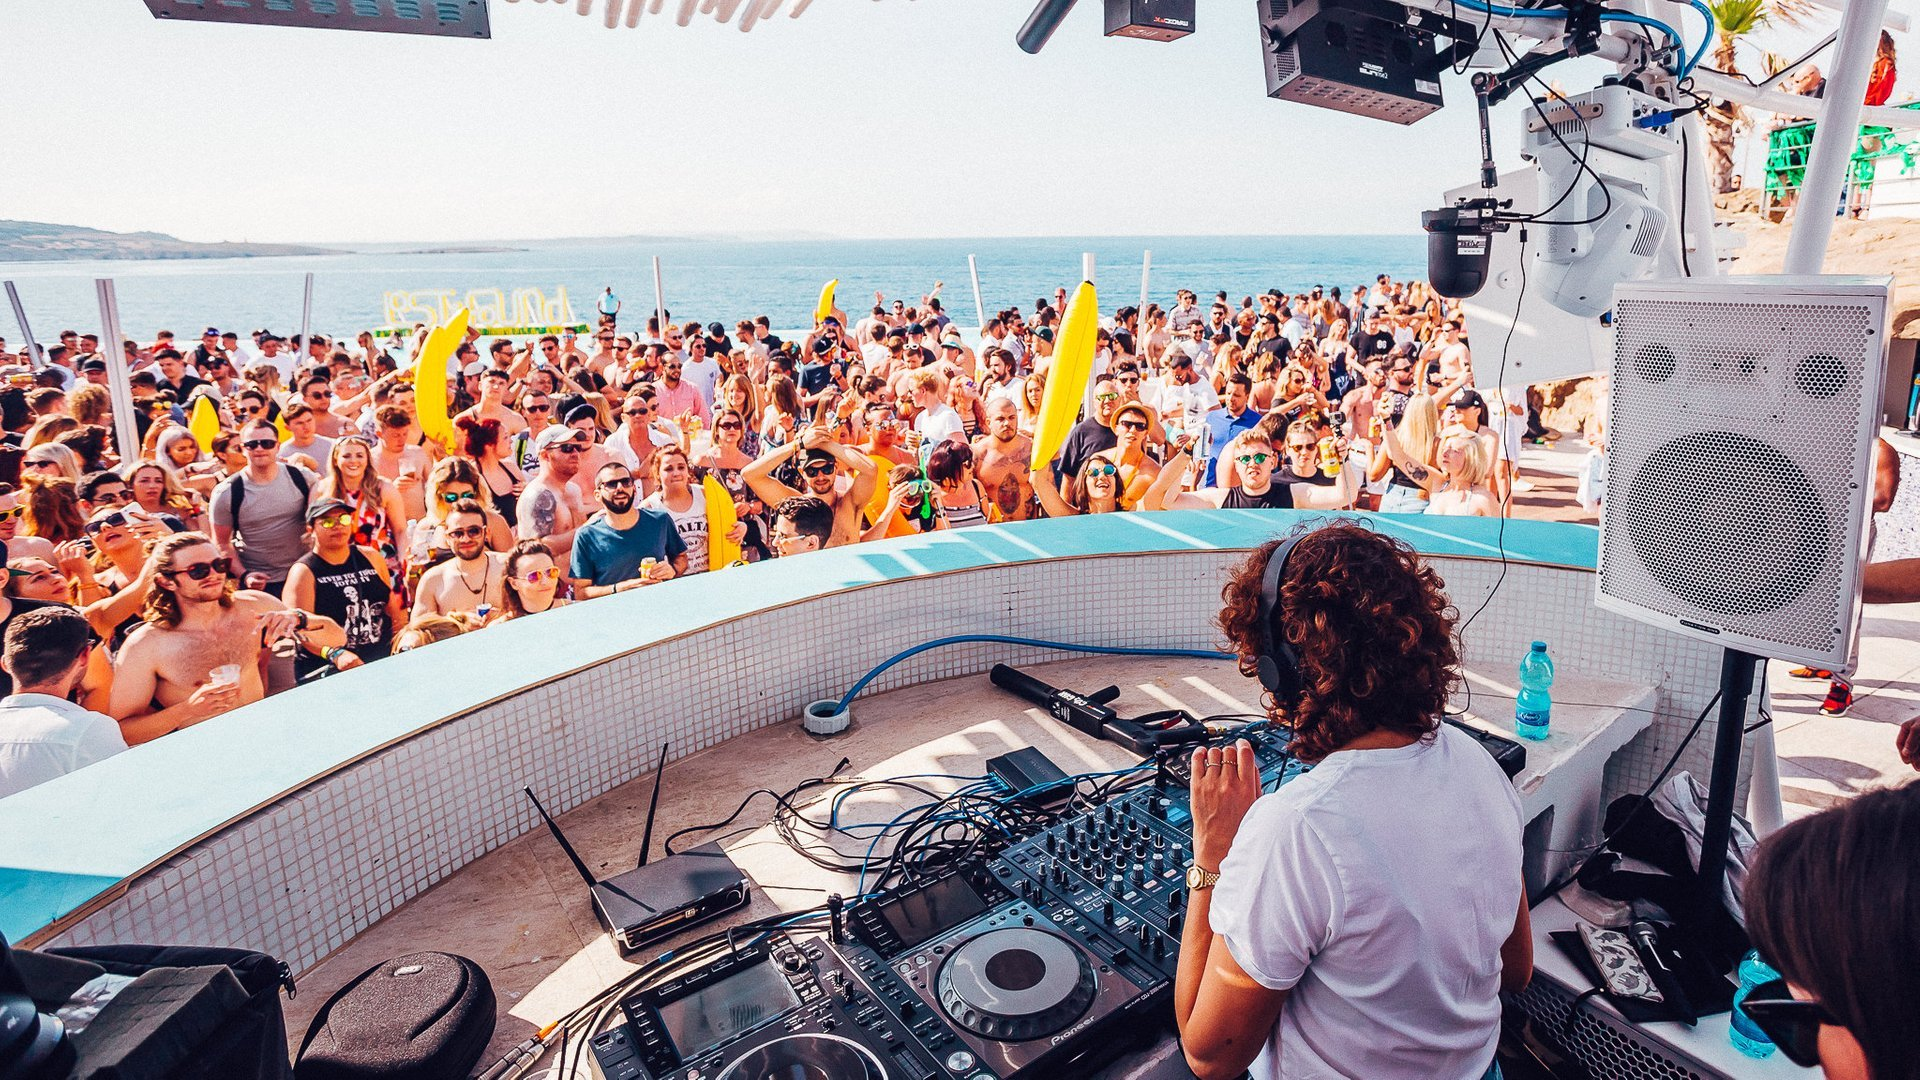 Lost & Found Festival in Malta 2020 - Best Time